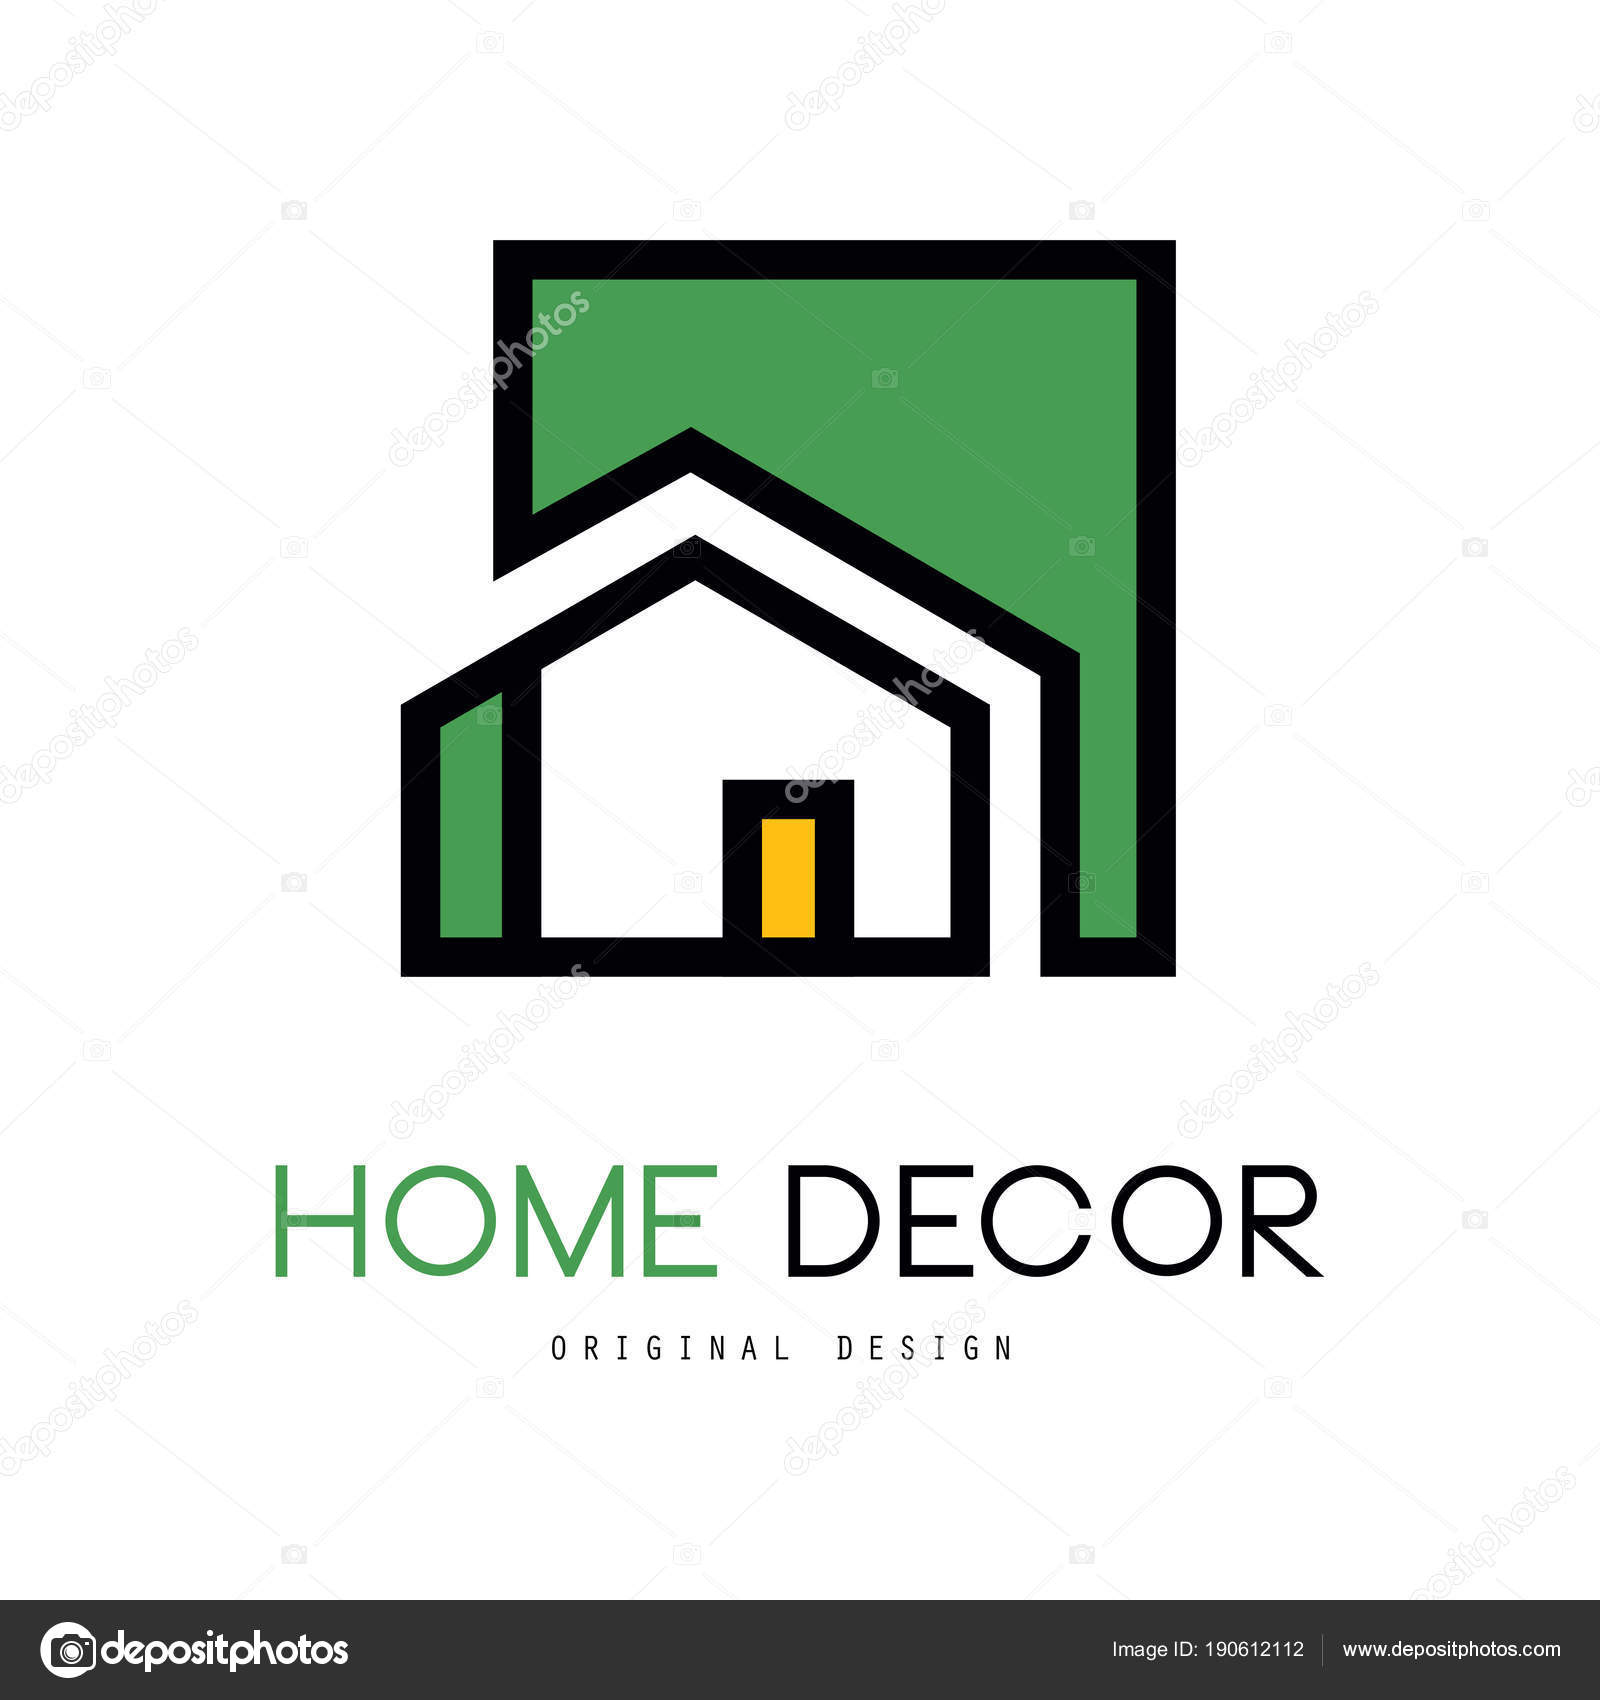 Original Linear Emblem With Green Fill For Interior Design And Home Decorating Company Or Business Vector Illustration Isolated On White Background